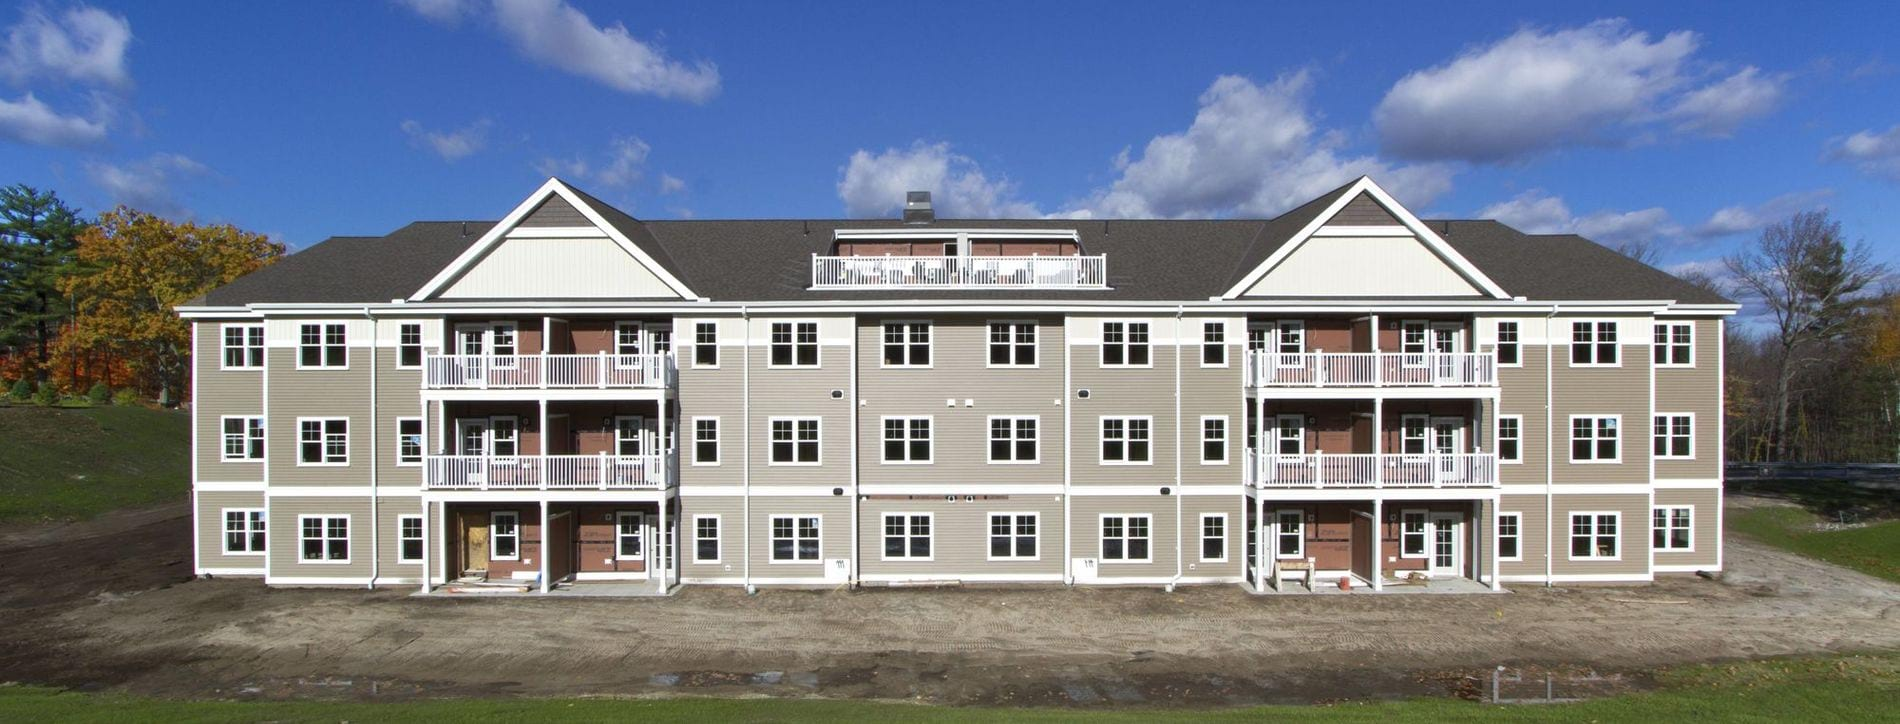 Apartments For Rent Londonderry Nh Wallace Farm